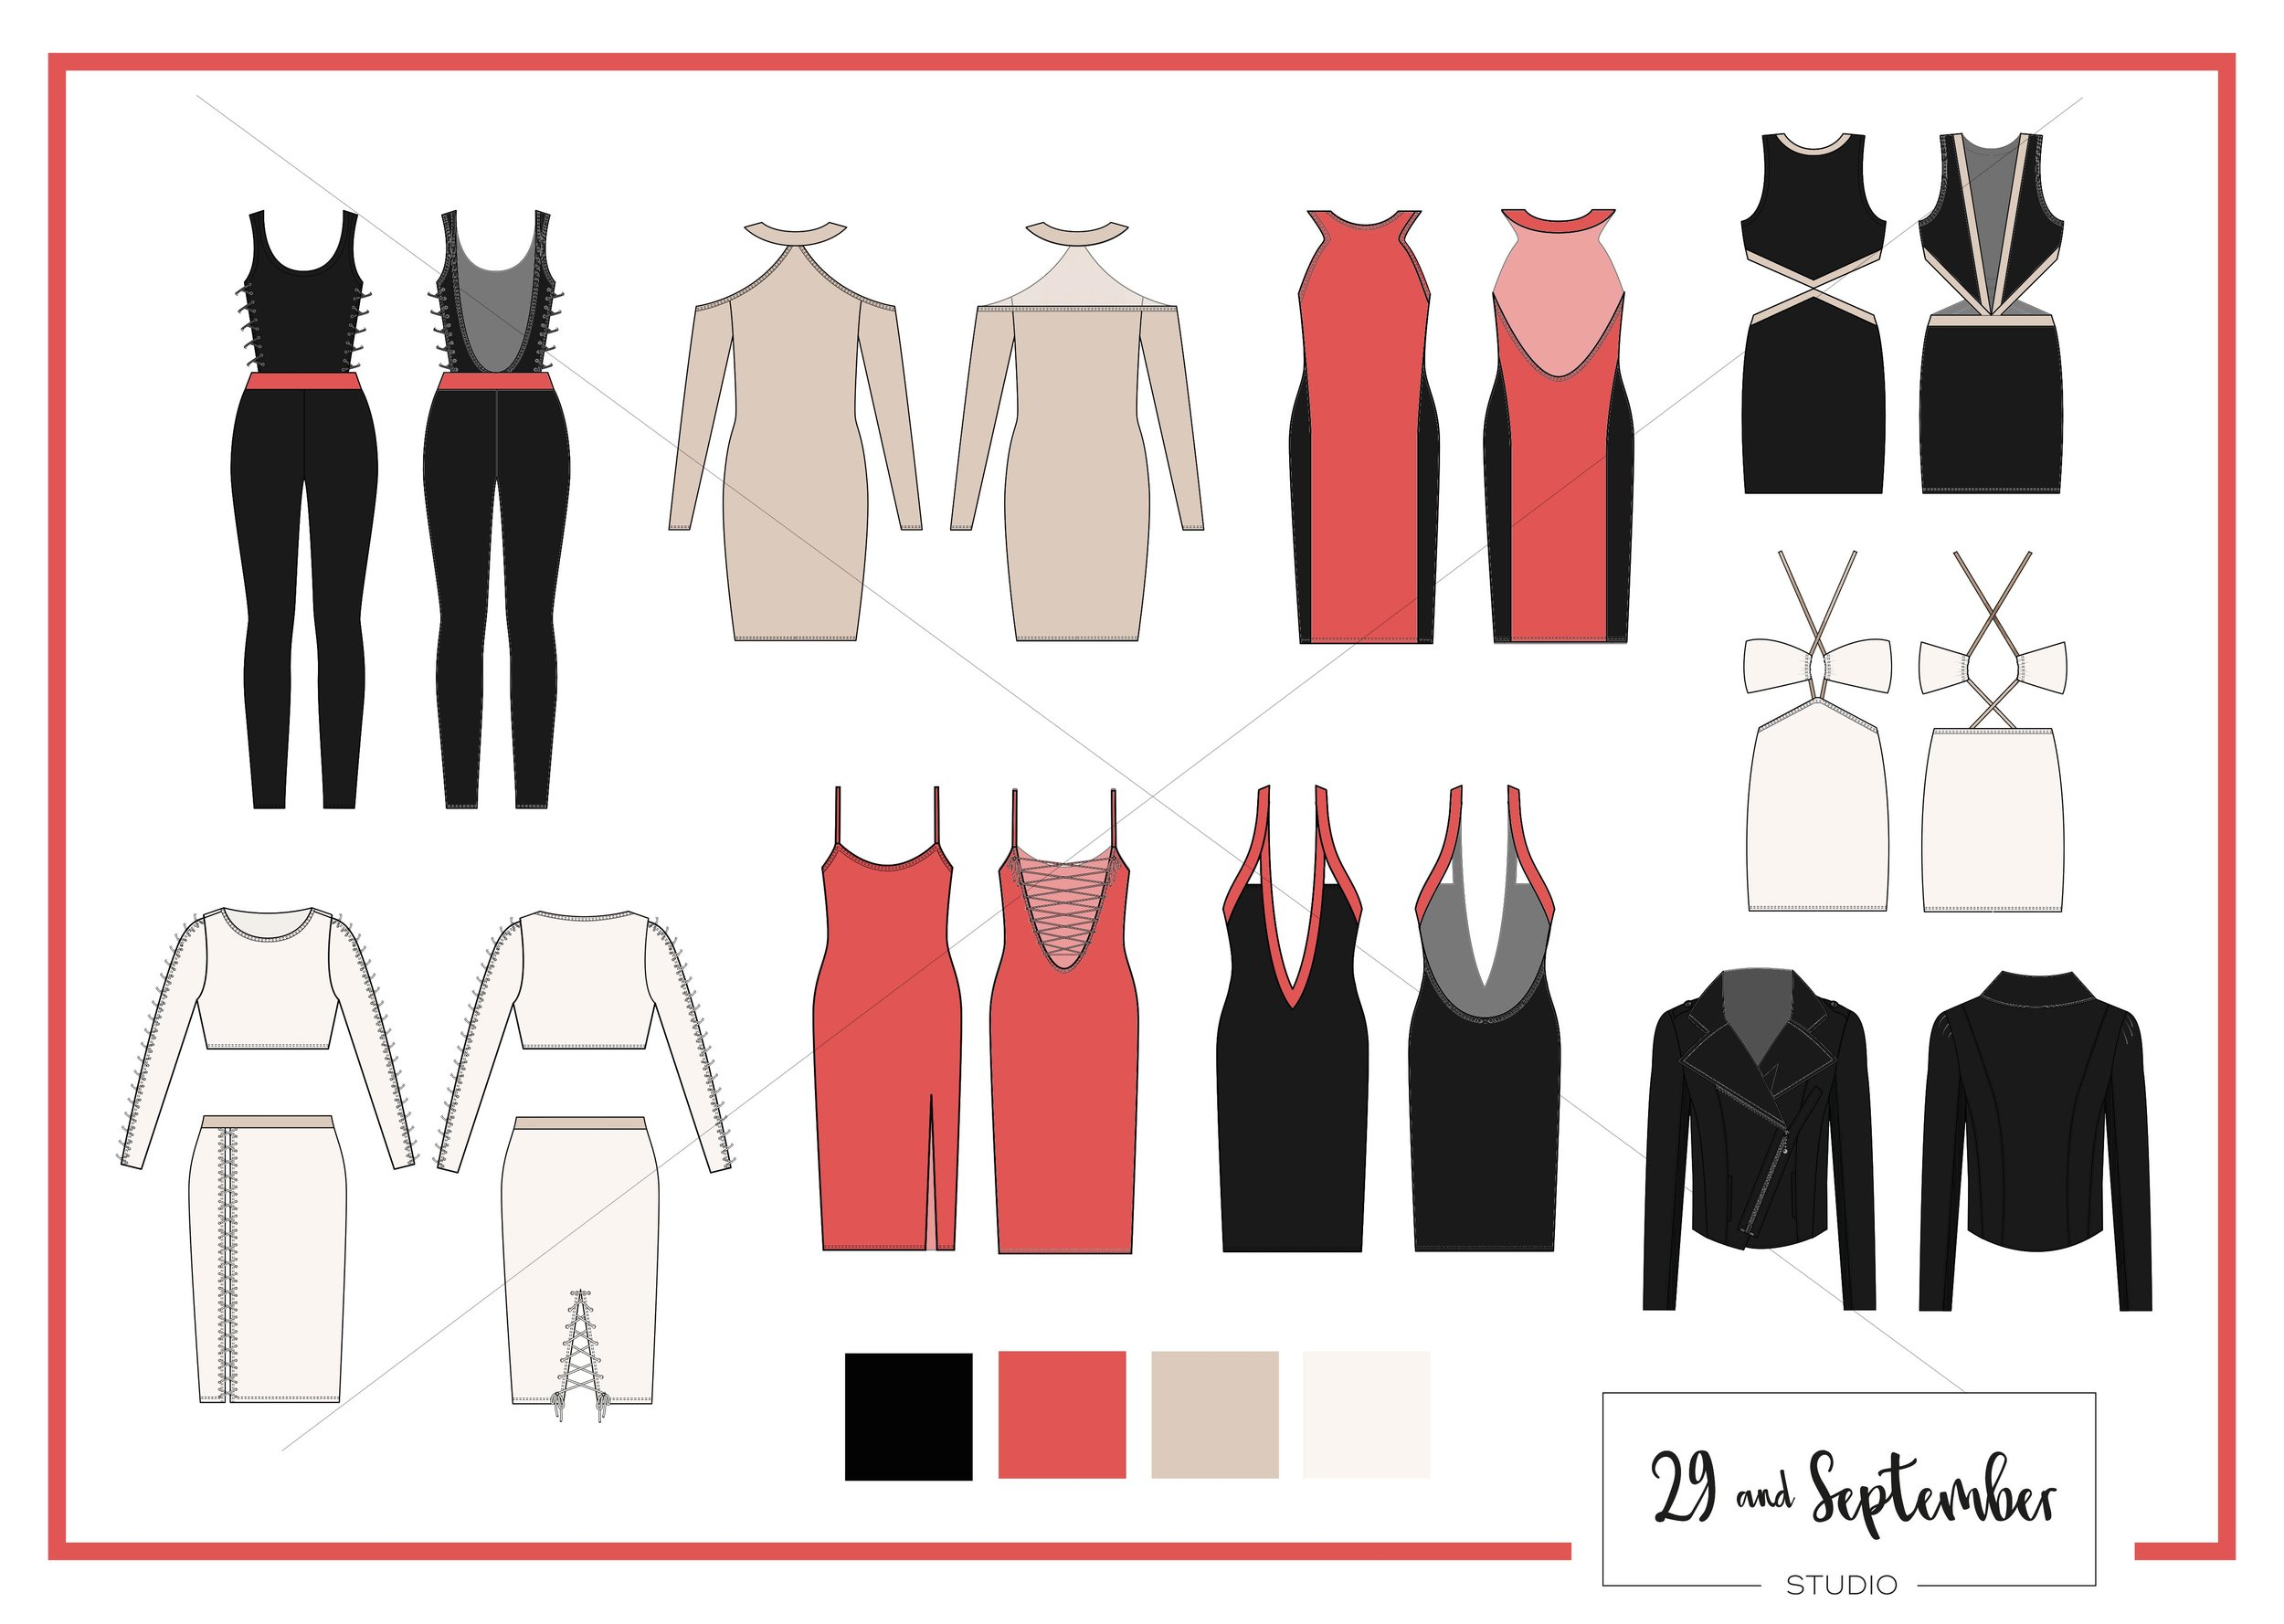 What is a technical drawing CAD and why do I need one for my fashion range